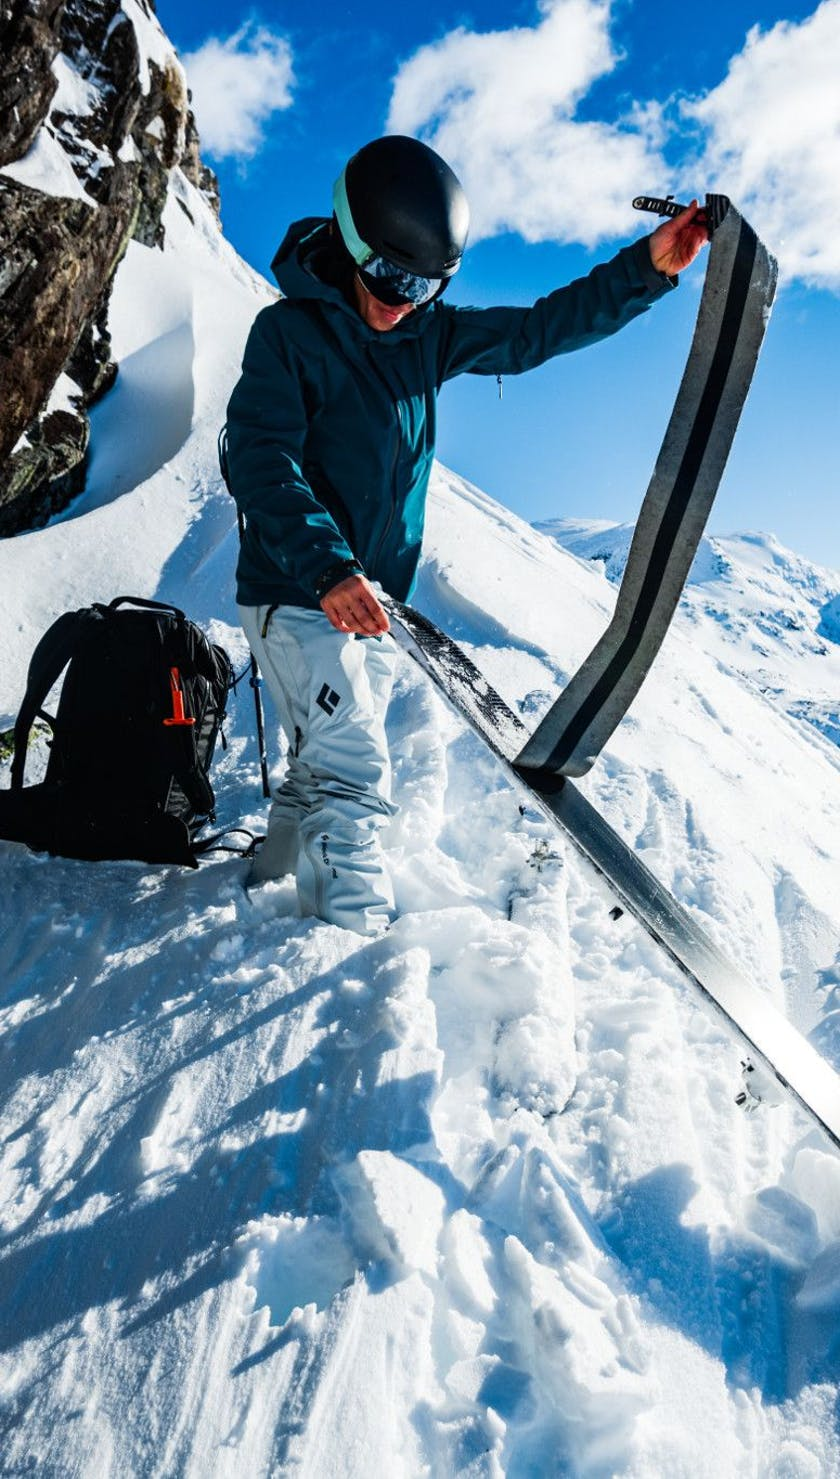 A person pulling Glidelite Skin off of their skis on a snowy mountain